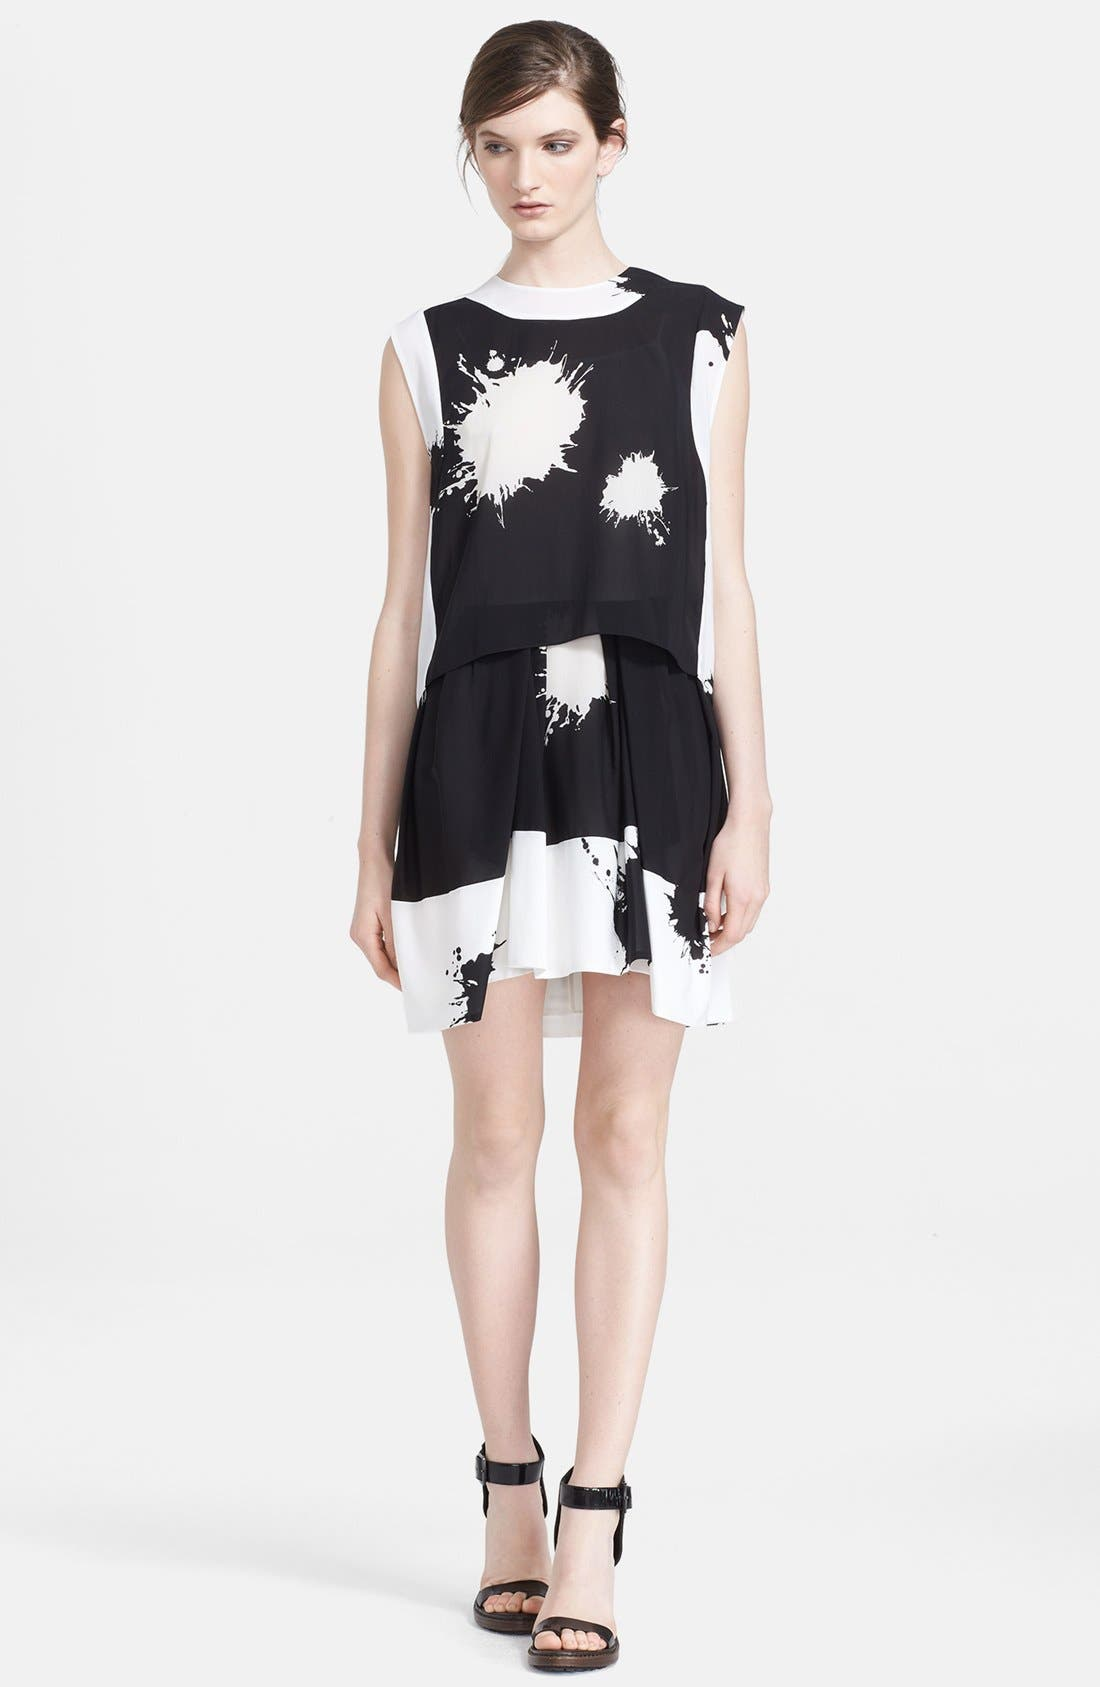 Main Image - 3.1 Phillip Lim Print Silk Two-Piece Tunic Dress